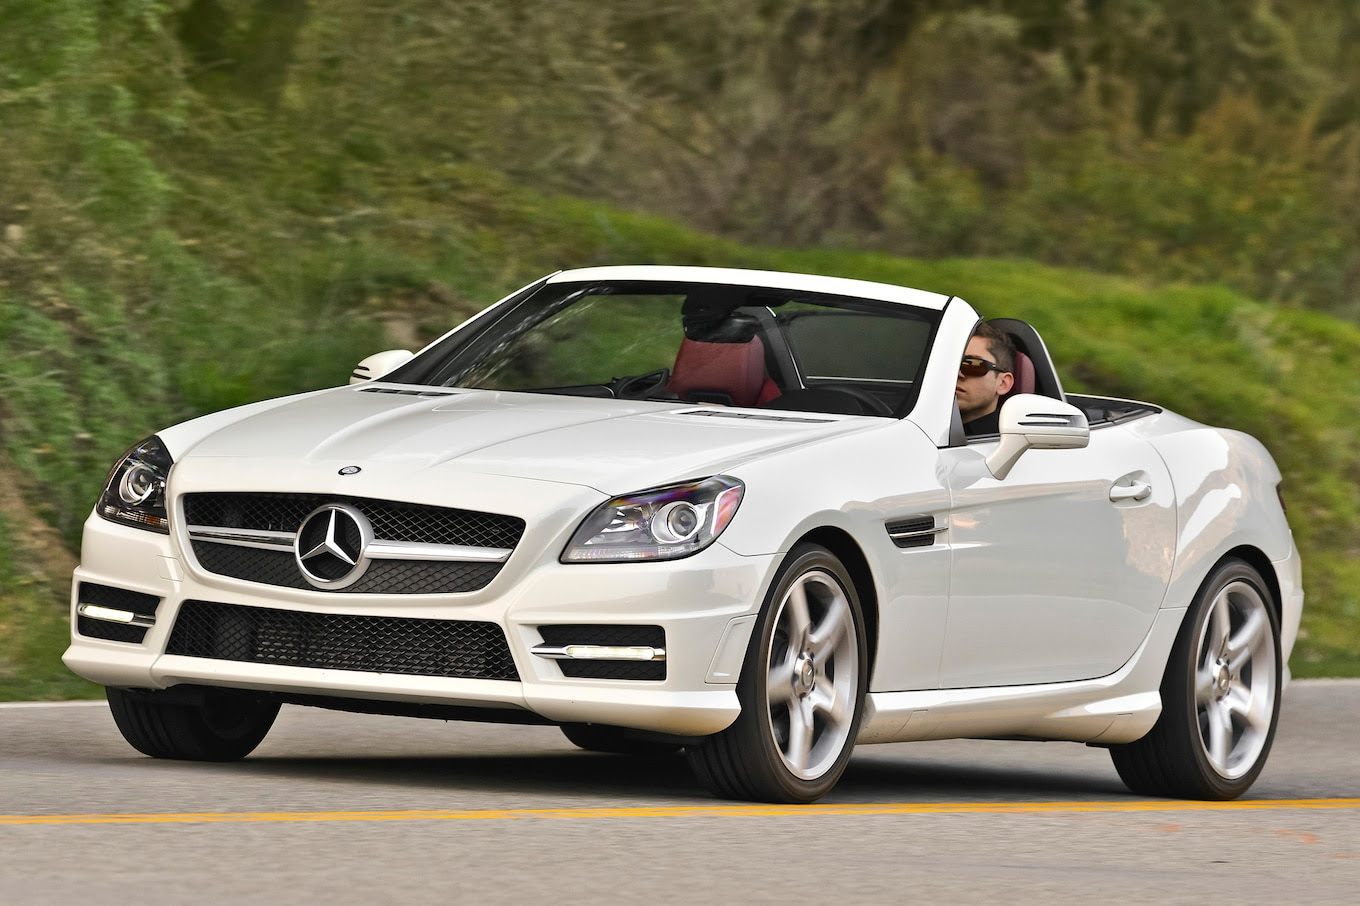 2014 Mercedes-Benz SLK-Class Reviews and Rating | Motor Trend